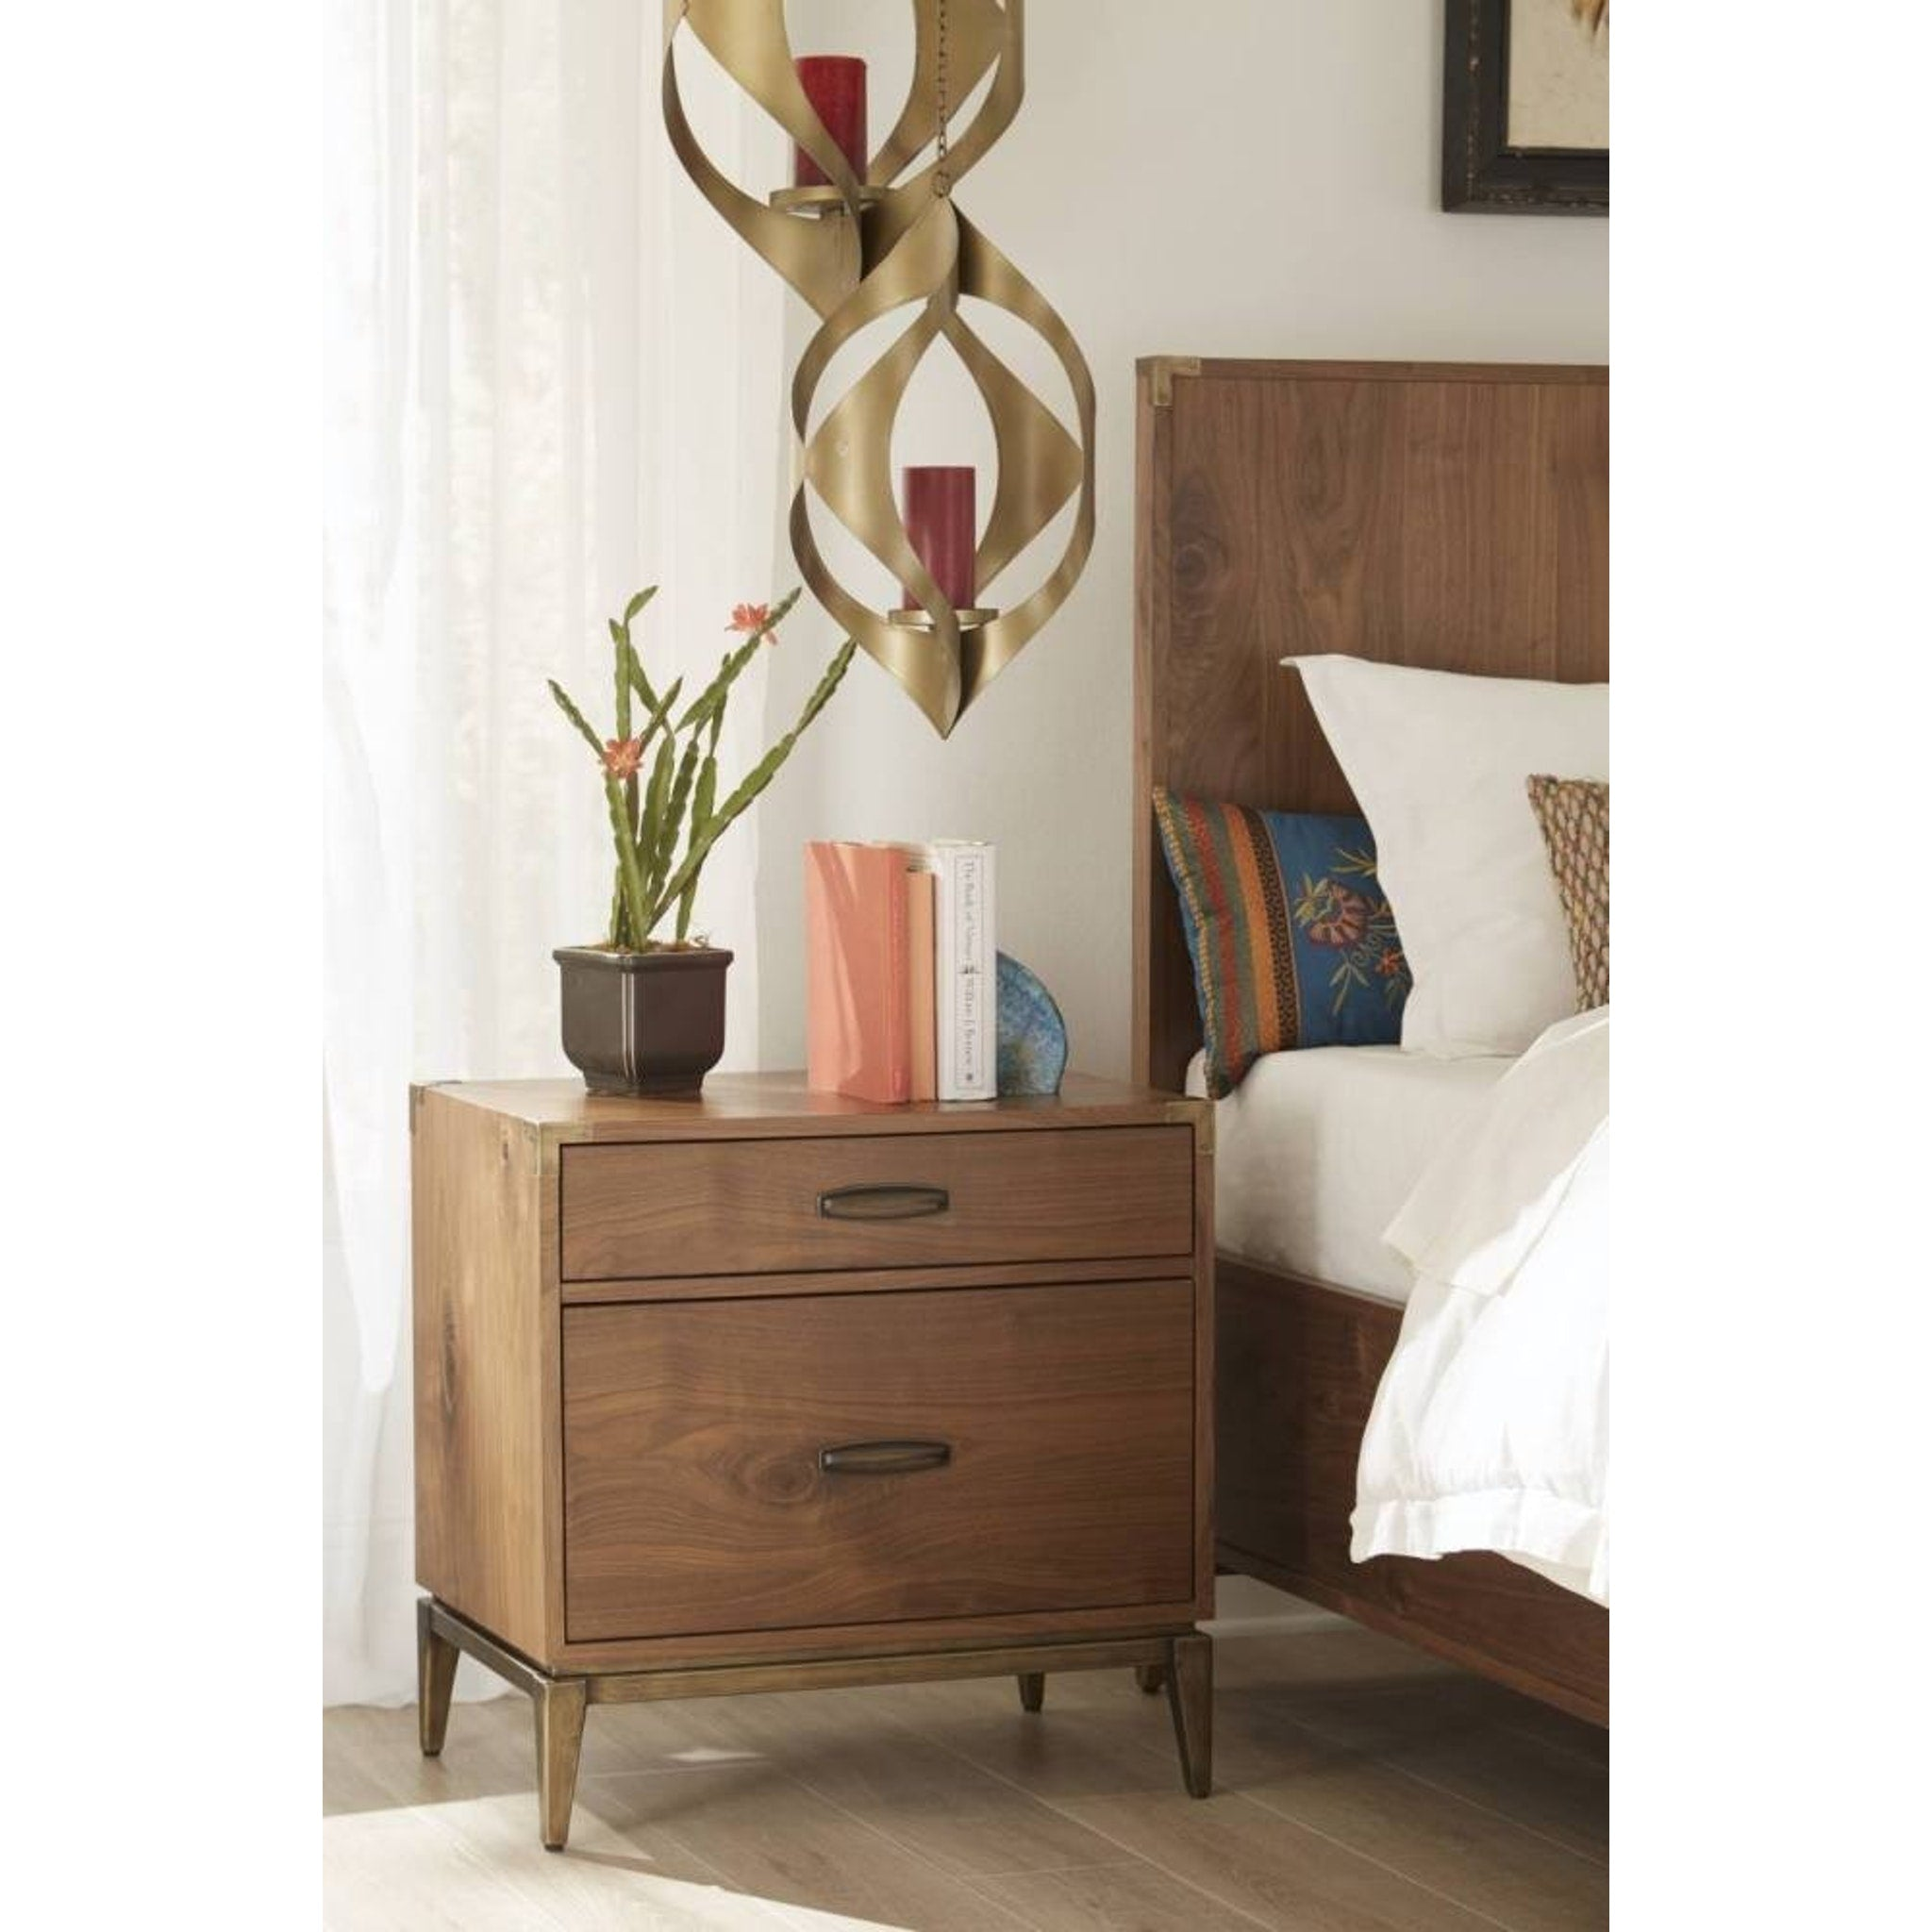 Adler Two Drawer Nightstand in Natural Walnut